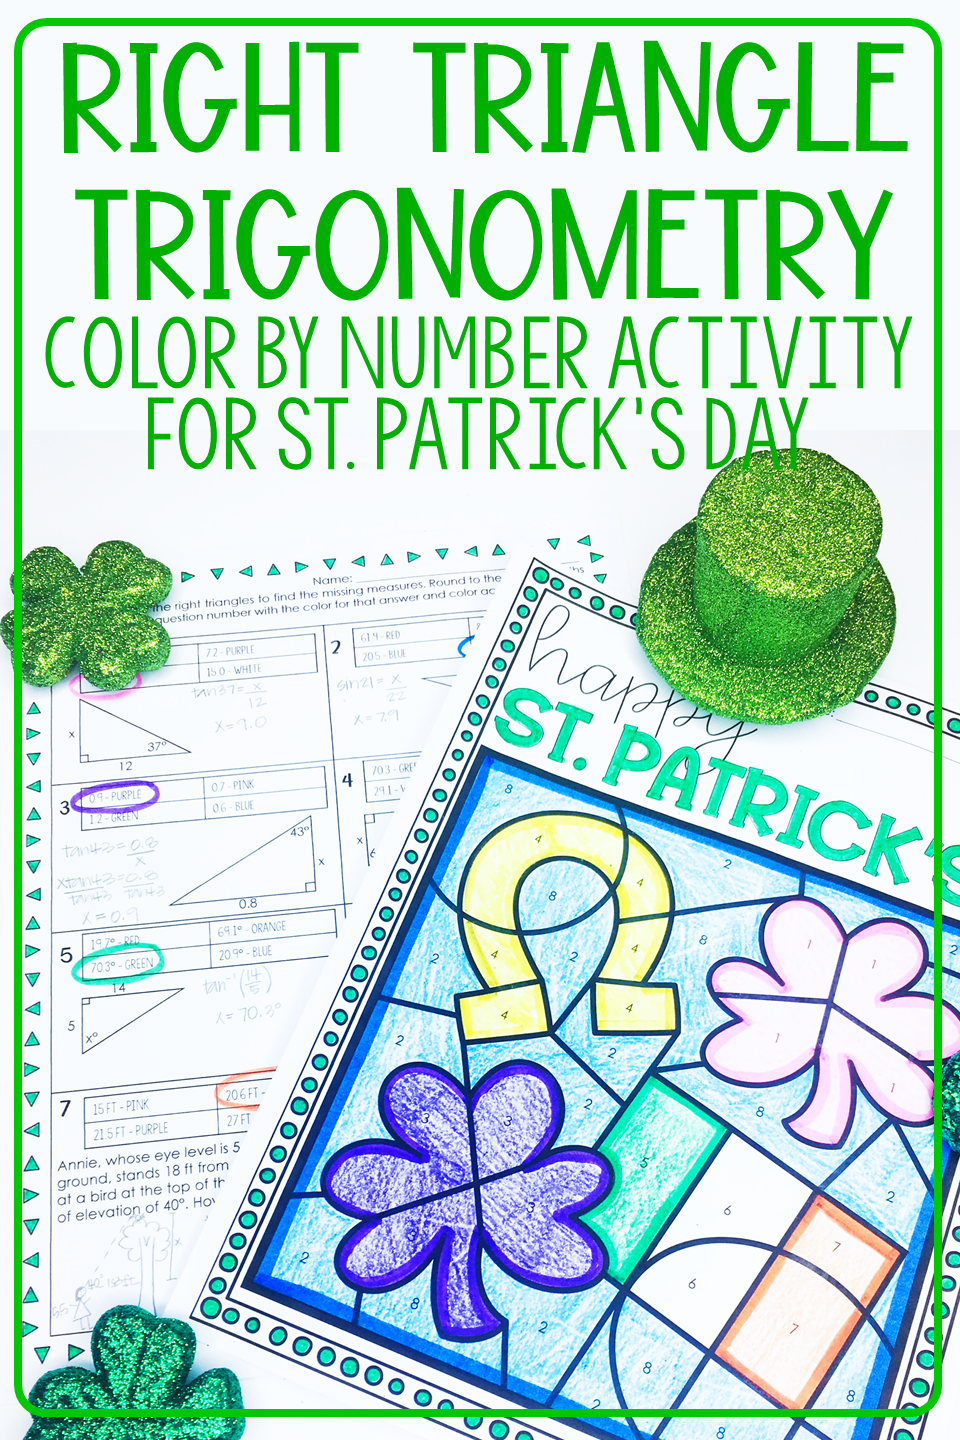 small resolution of ST. PATRICK'S DAY Geometry   Right Triangle Trig Coloring Activity   Trigonometry  worksheets